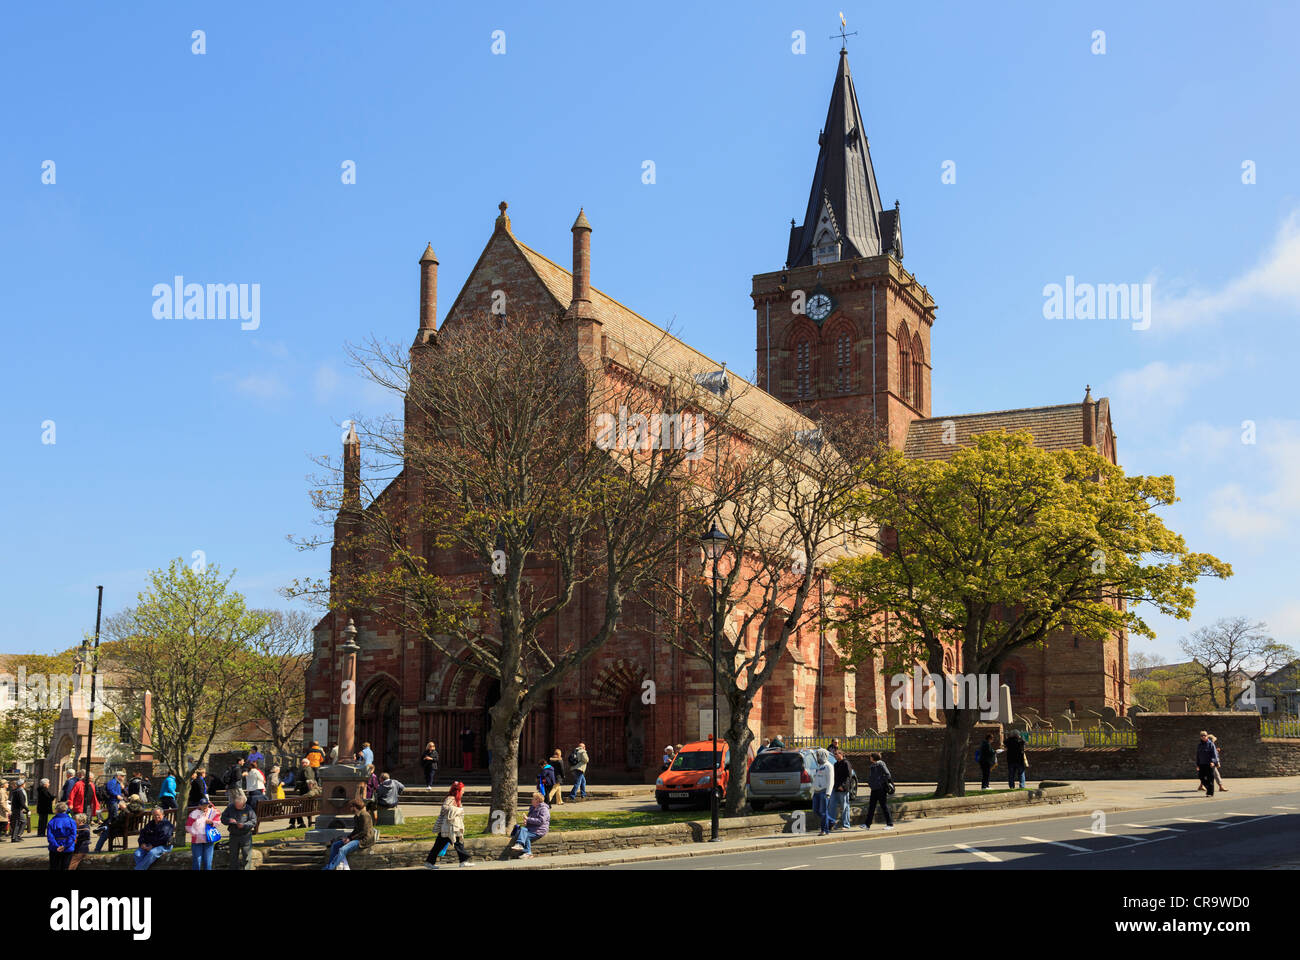 Street scene at Kirk Green with trees growing outside St Magnus cathedral busy with tourists Kirkwall Orkney Mainland - Stock Image